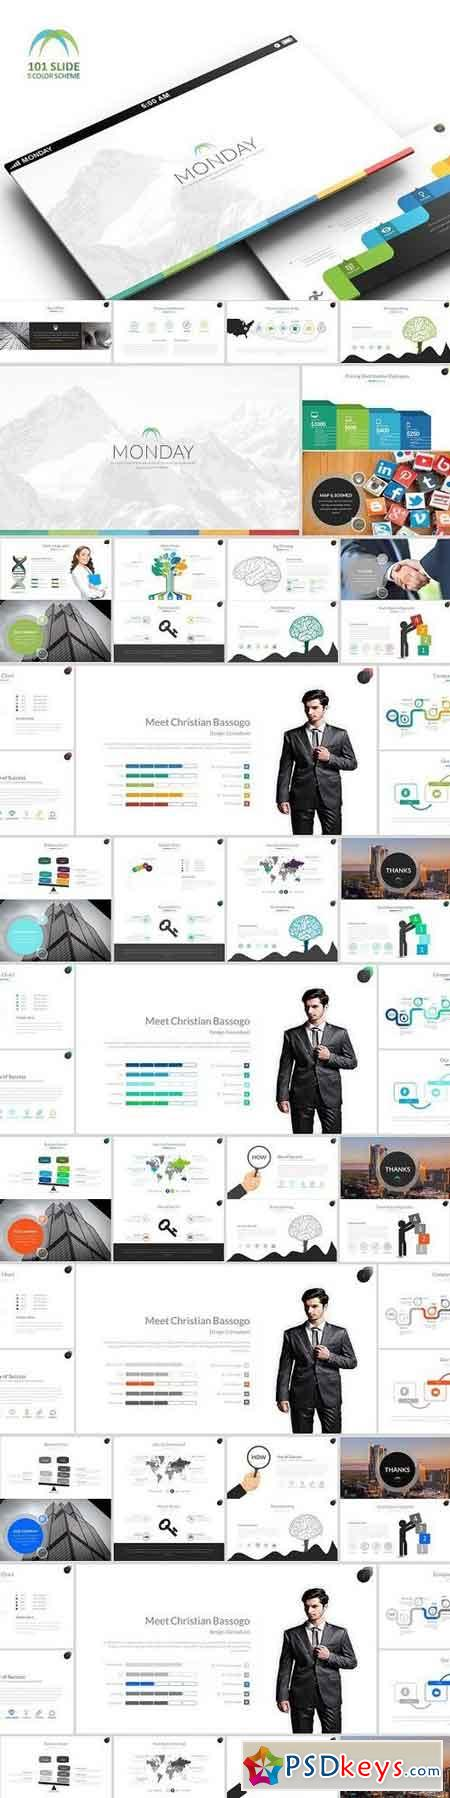 Monday Business Powerpoint 1294632